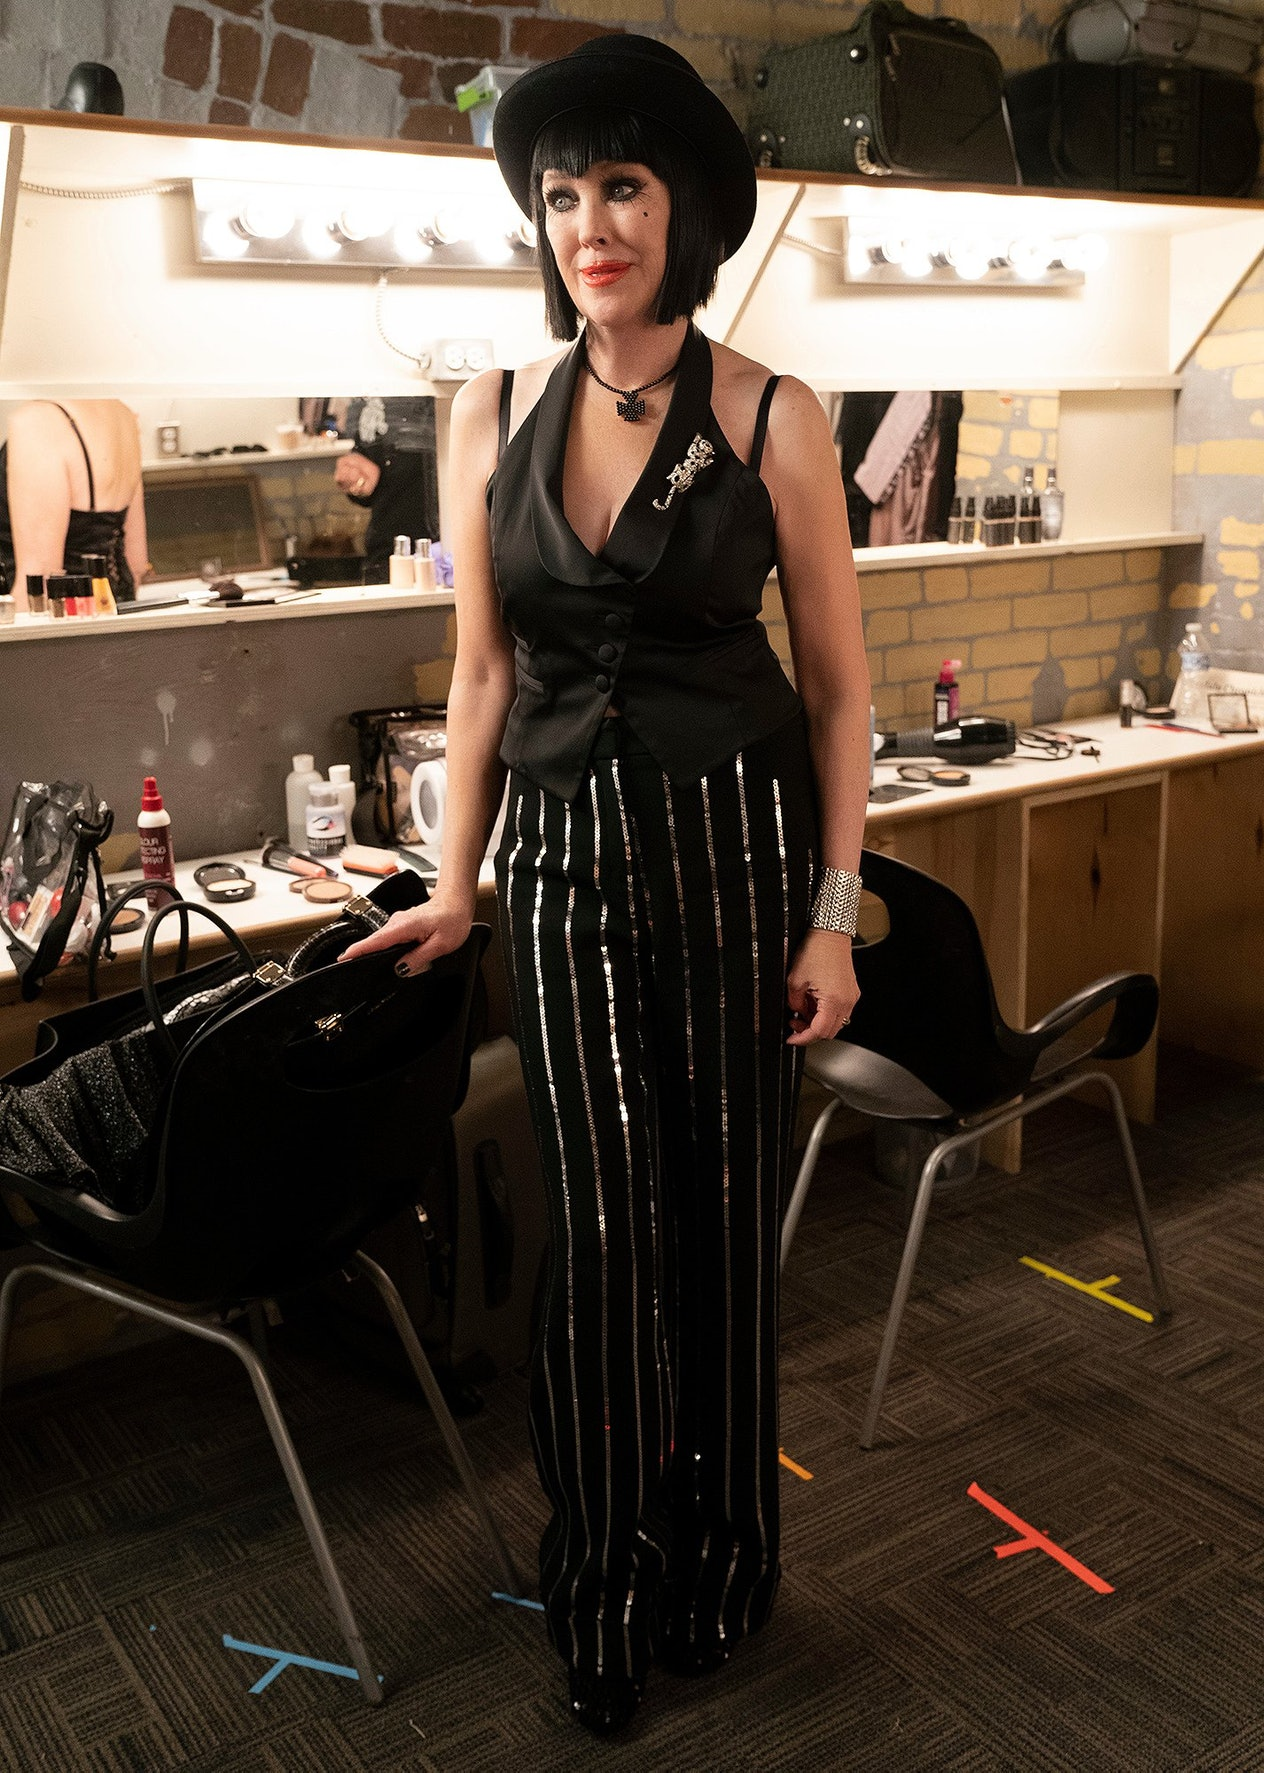 Moira Rose prepares to be Sally Bowles